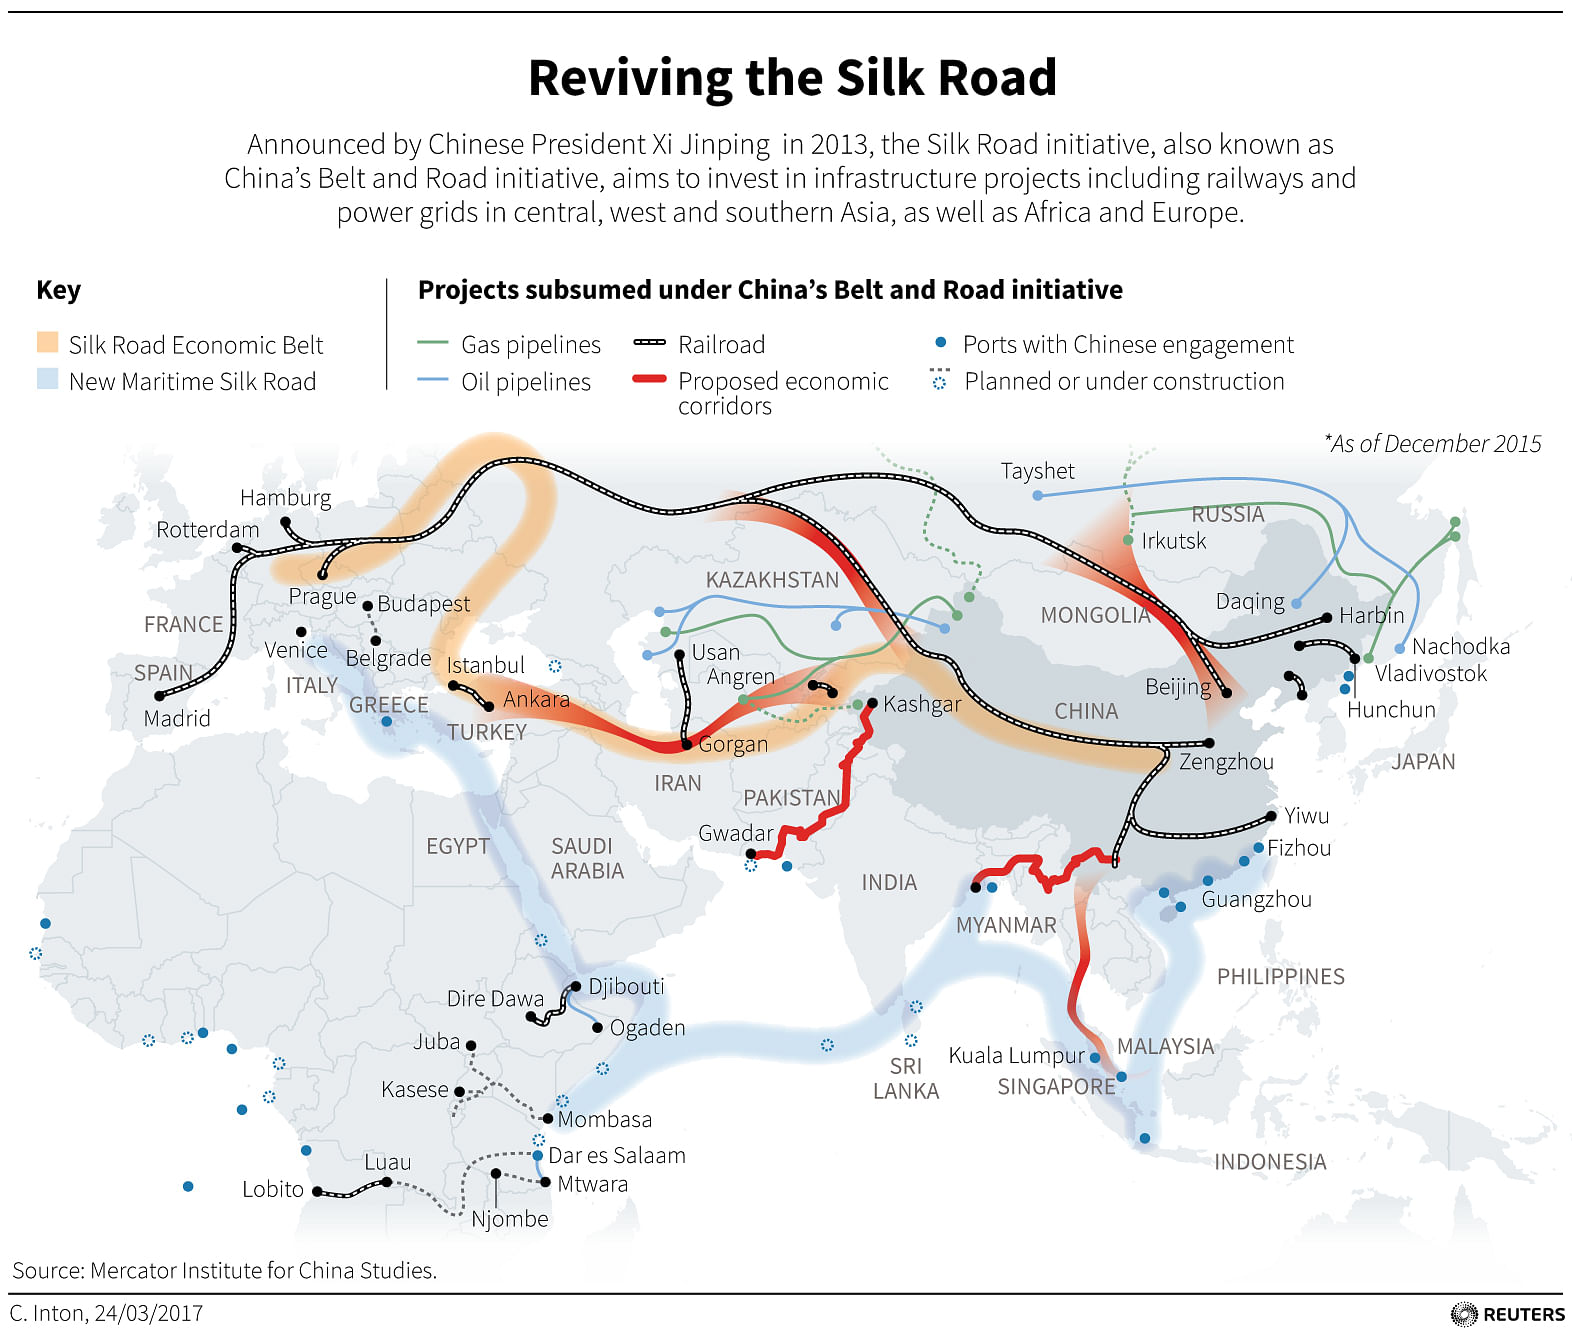 The trains and sea ports of One Belt One Road Chinas new Silk